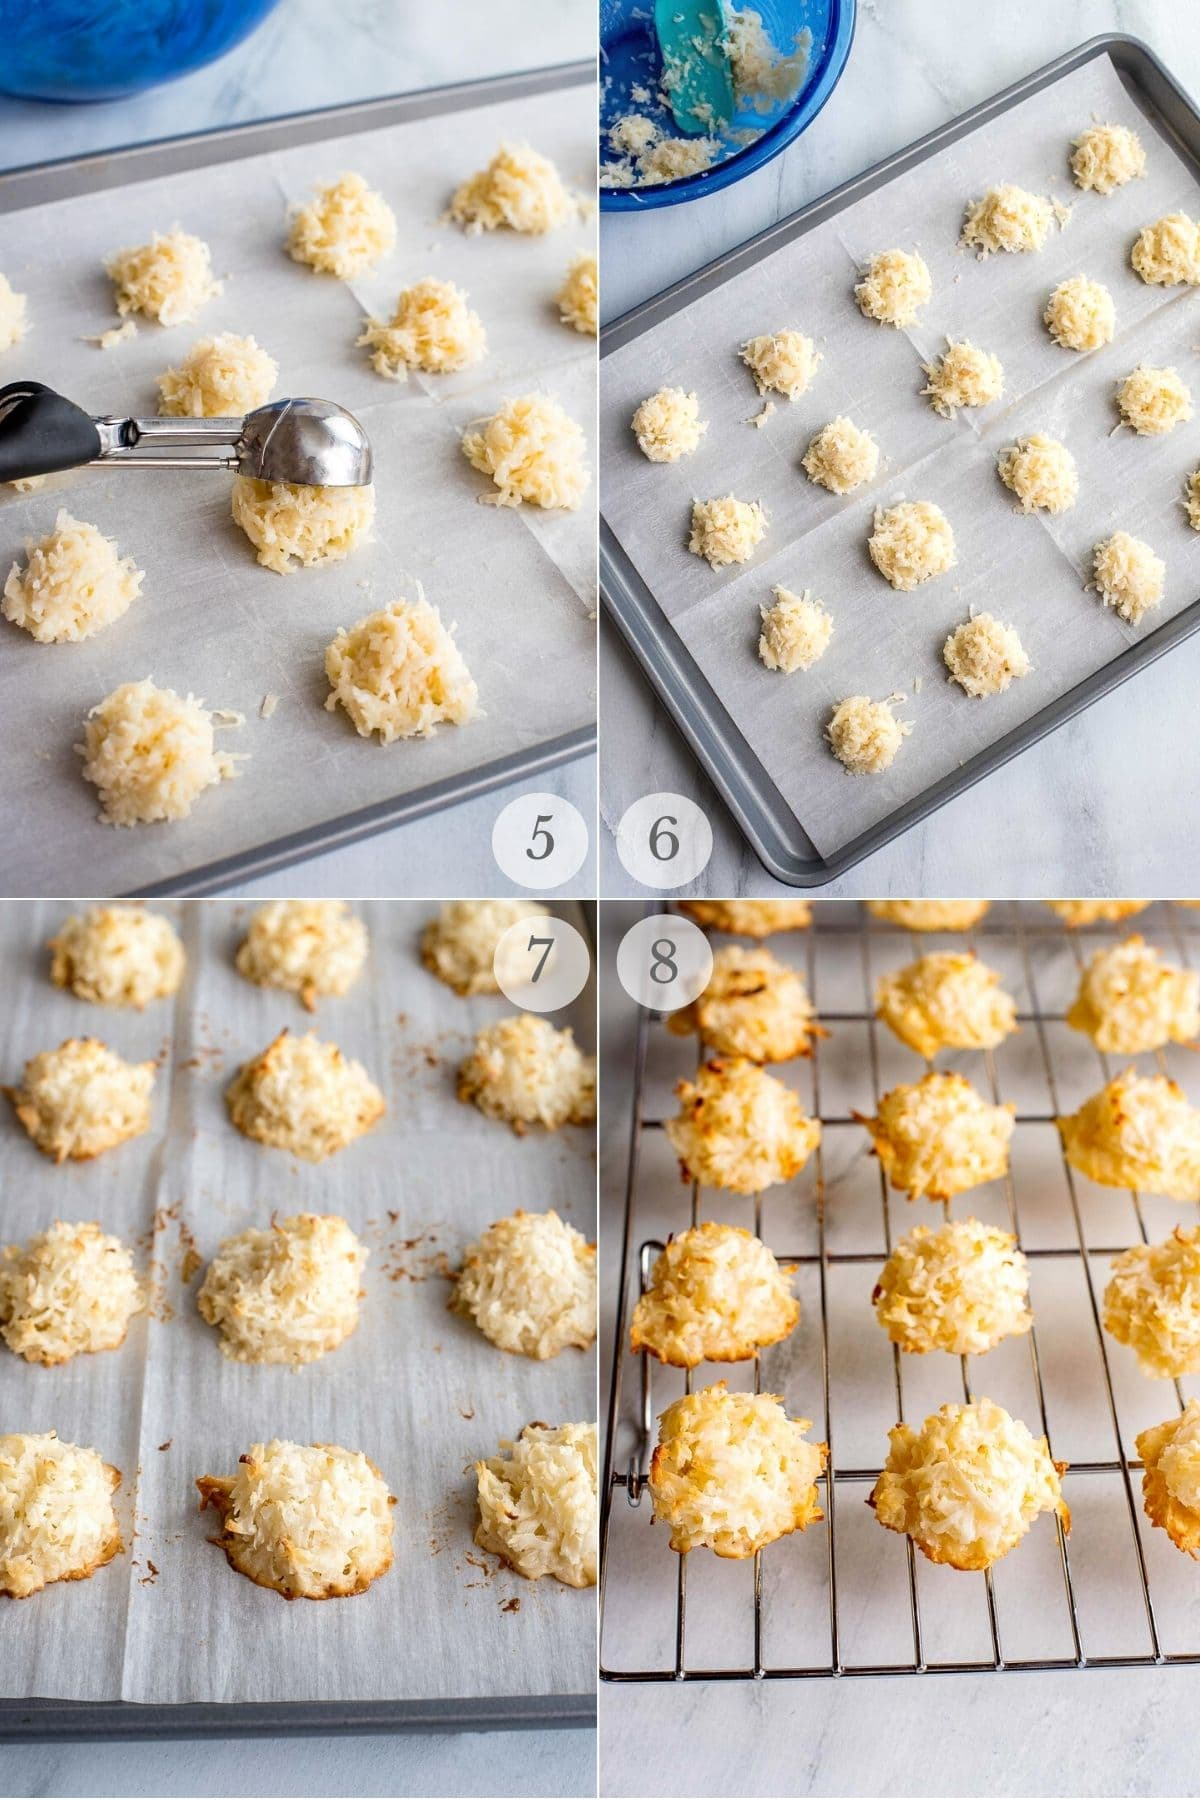 coconut macaroons recipe steps 5-8